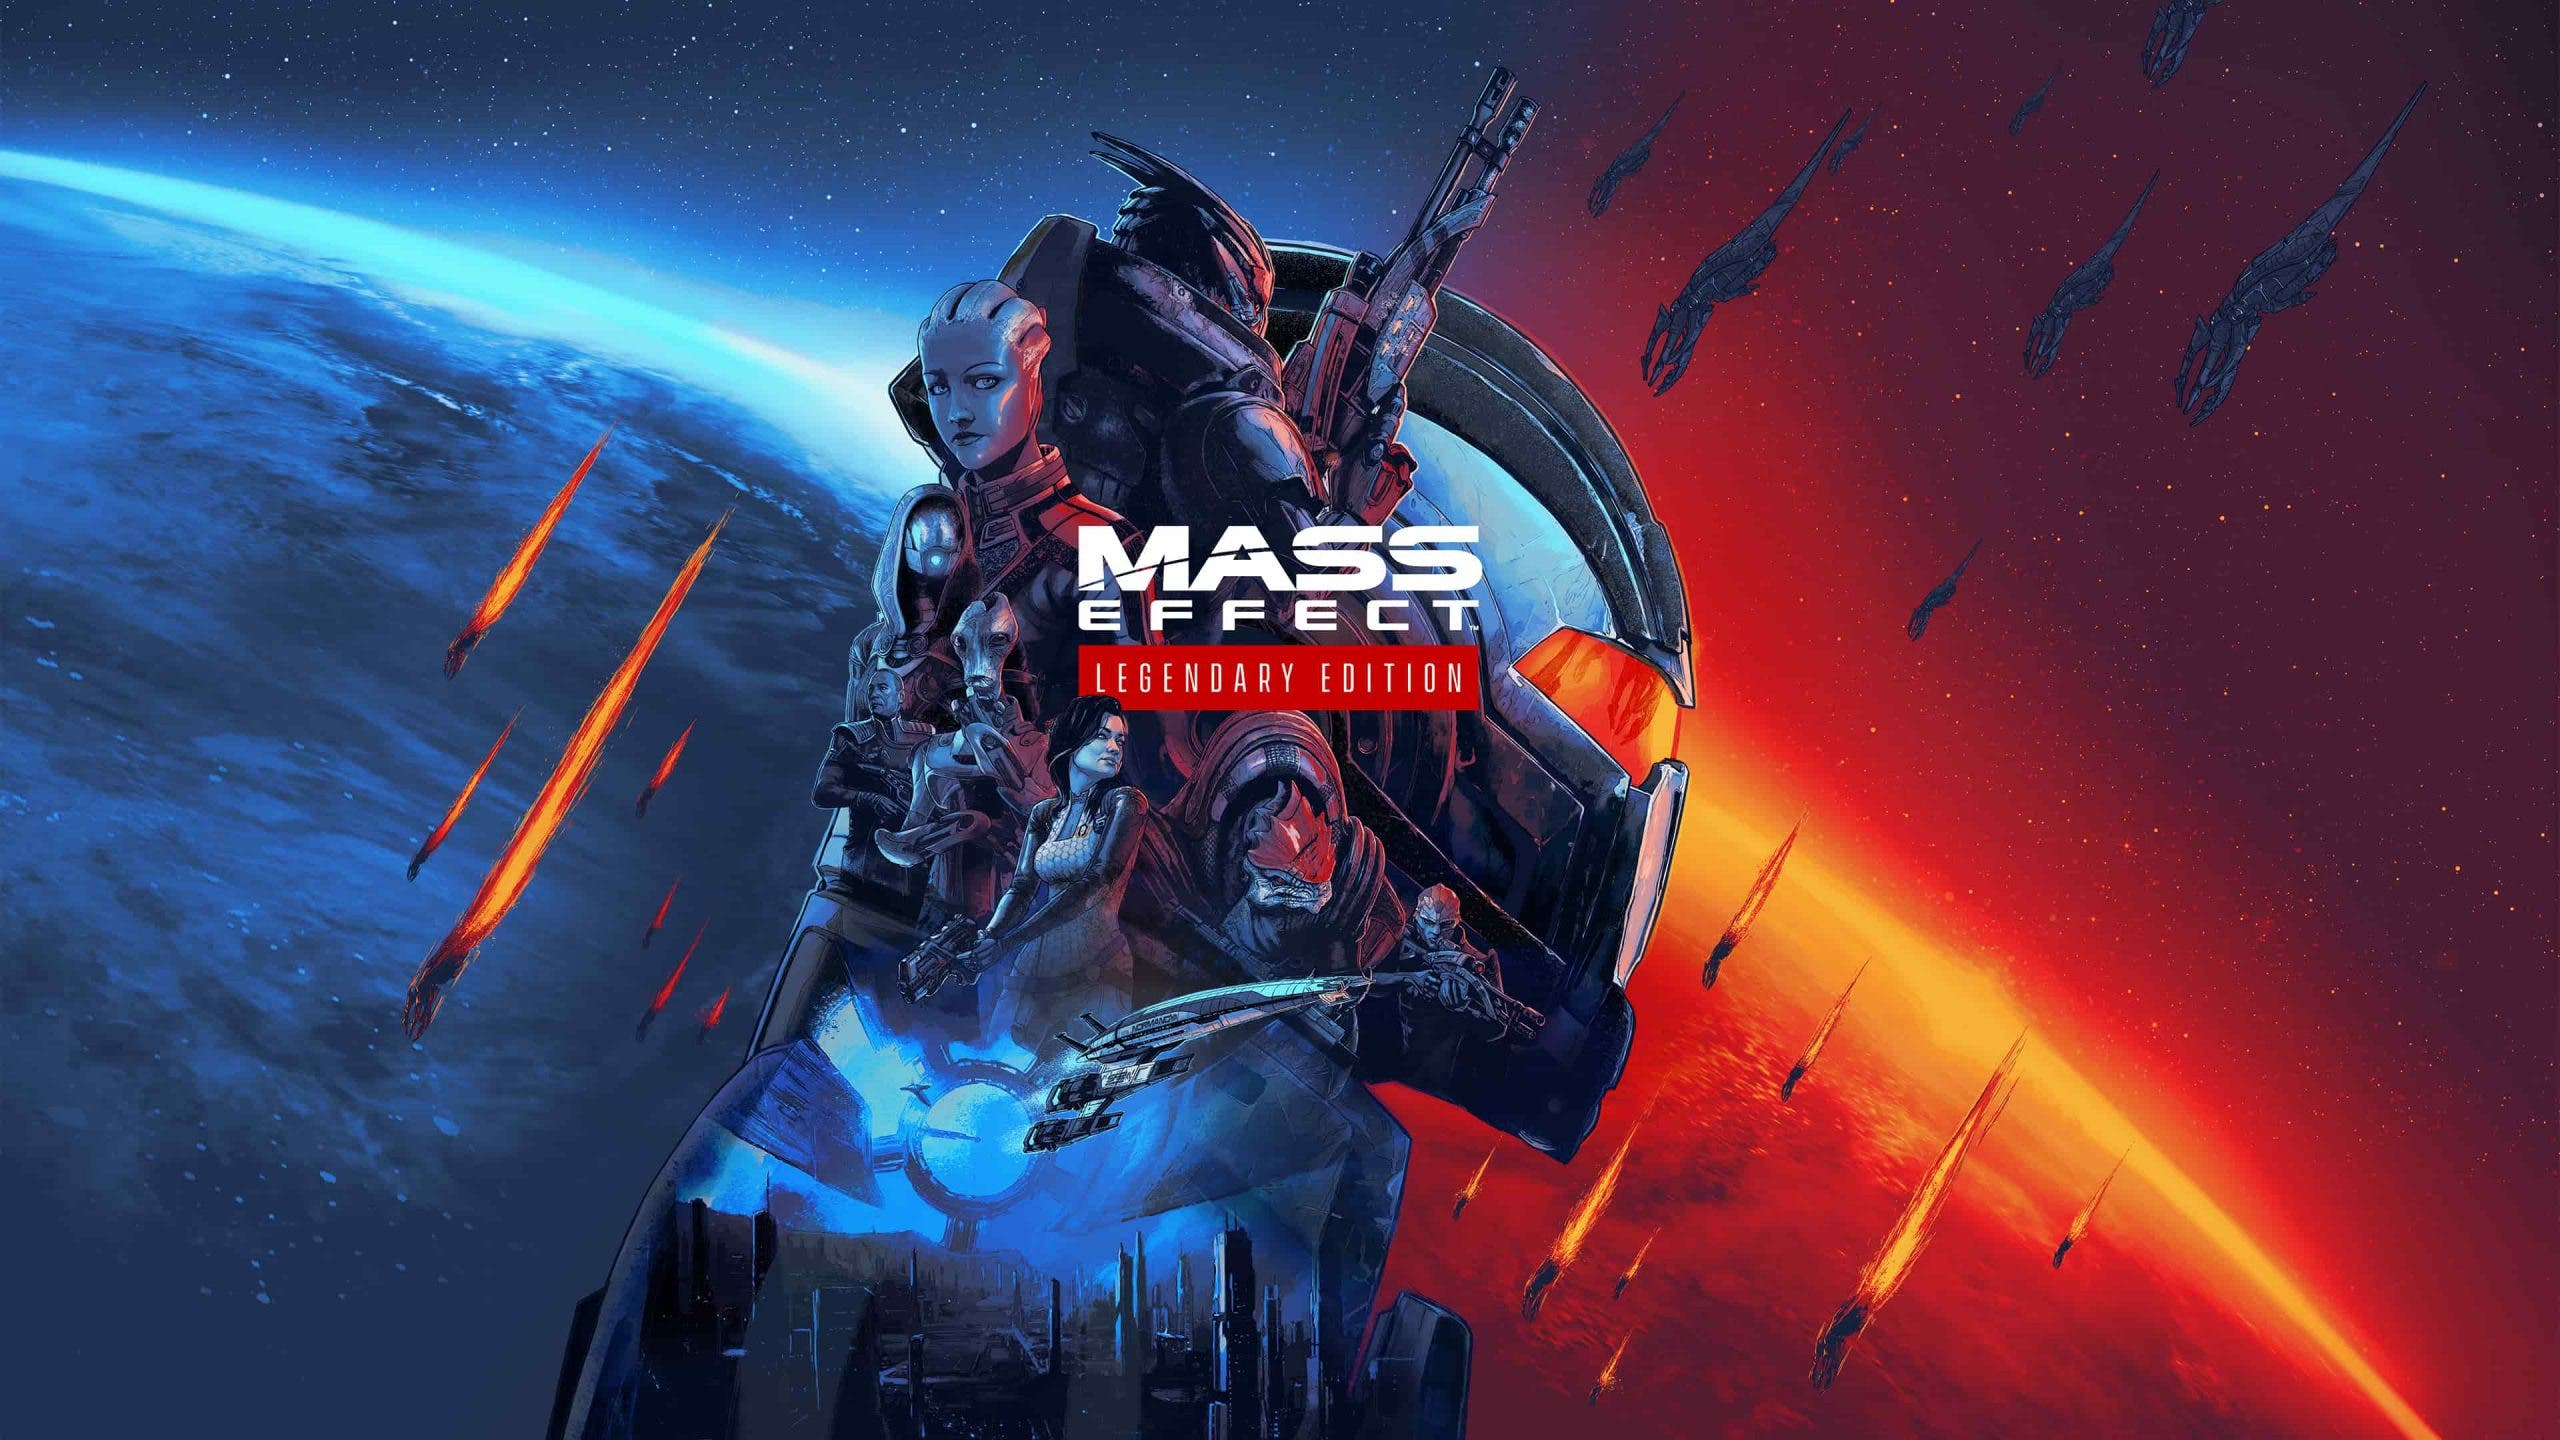 tamaño de descarga de Mass Effect Legendary Edition en Xbox